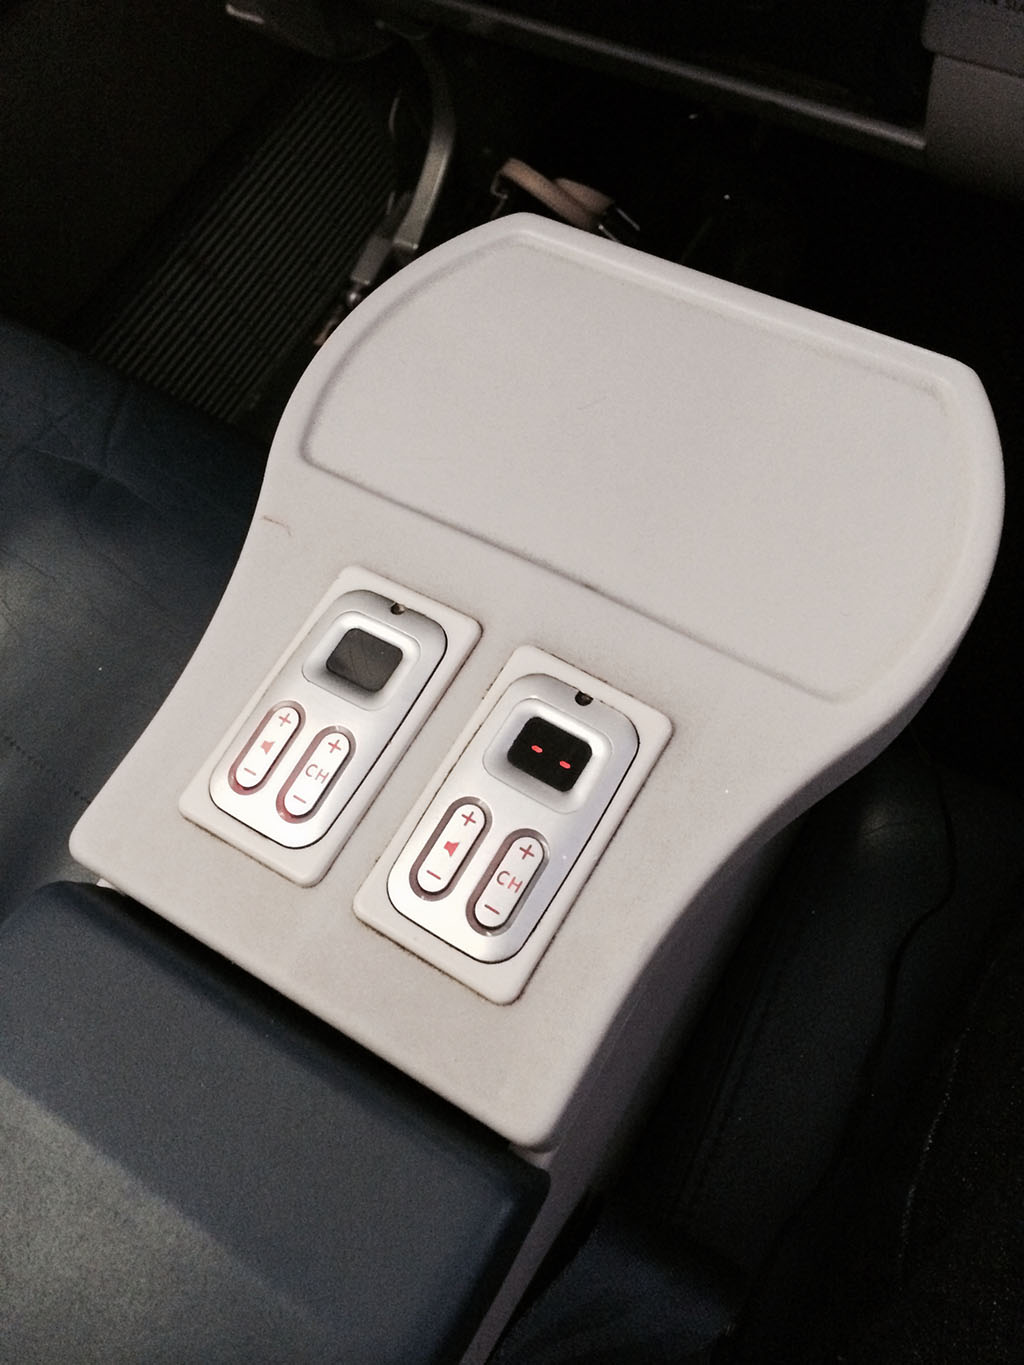 in flight entrainment seat controls